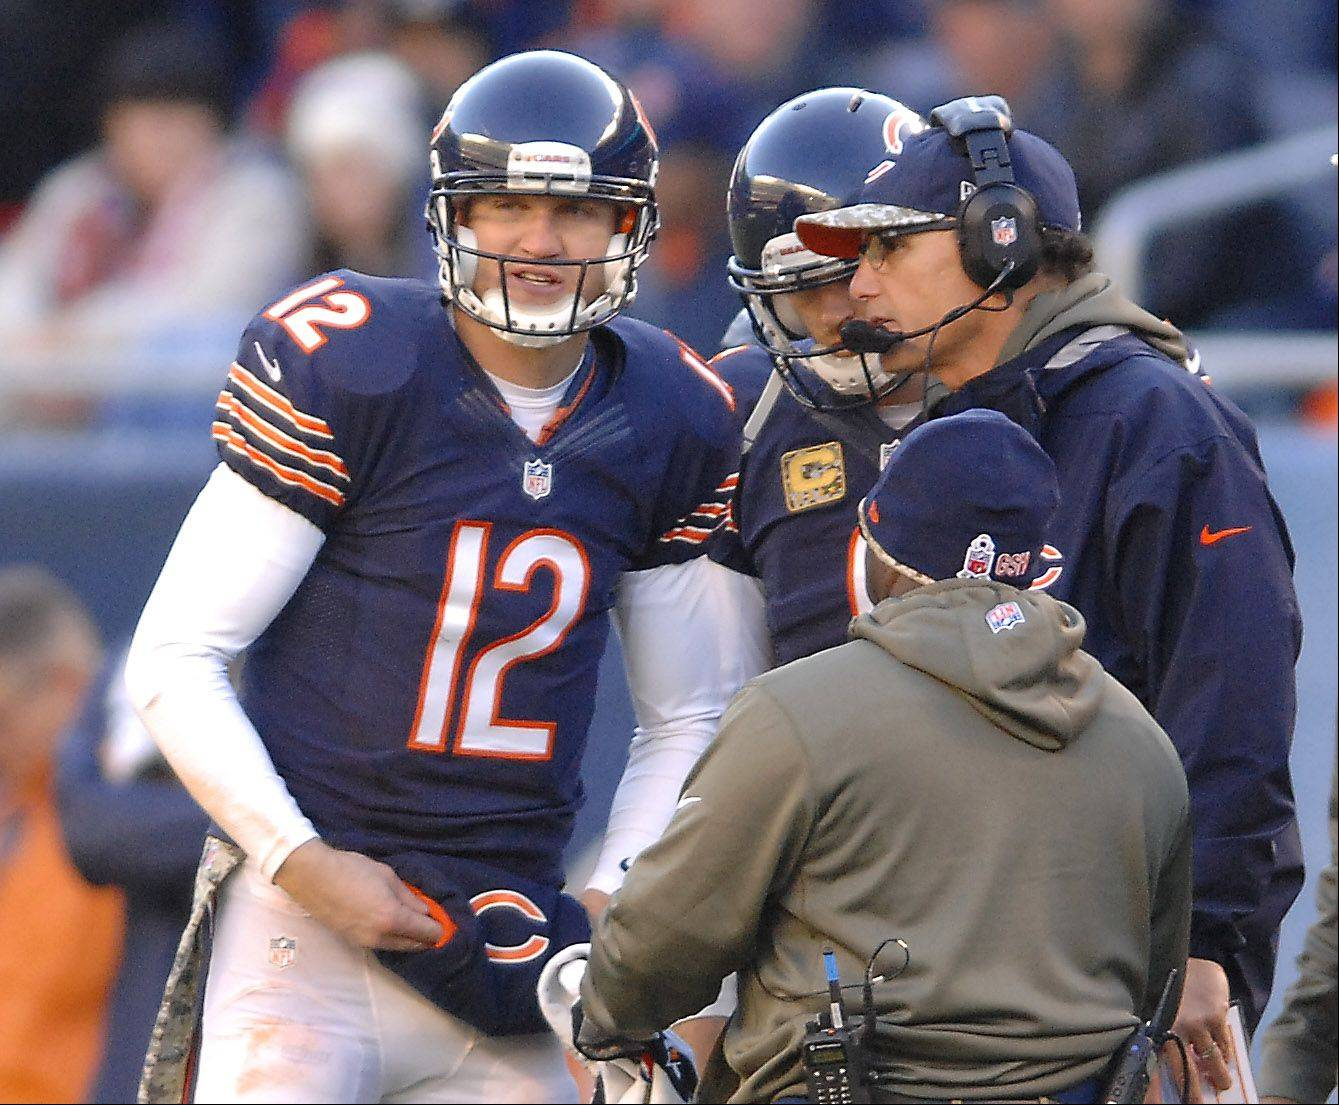 Mike North says he's seen enough of Jay Cutler and believes the Bears should start Josh McCown (12) for the next two seasons and draft a young quarterback for the future next spring.